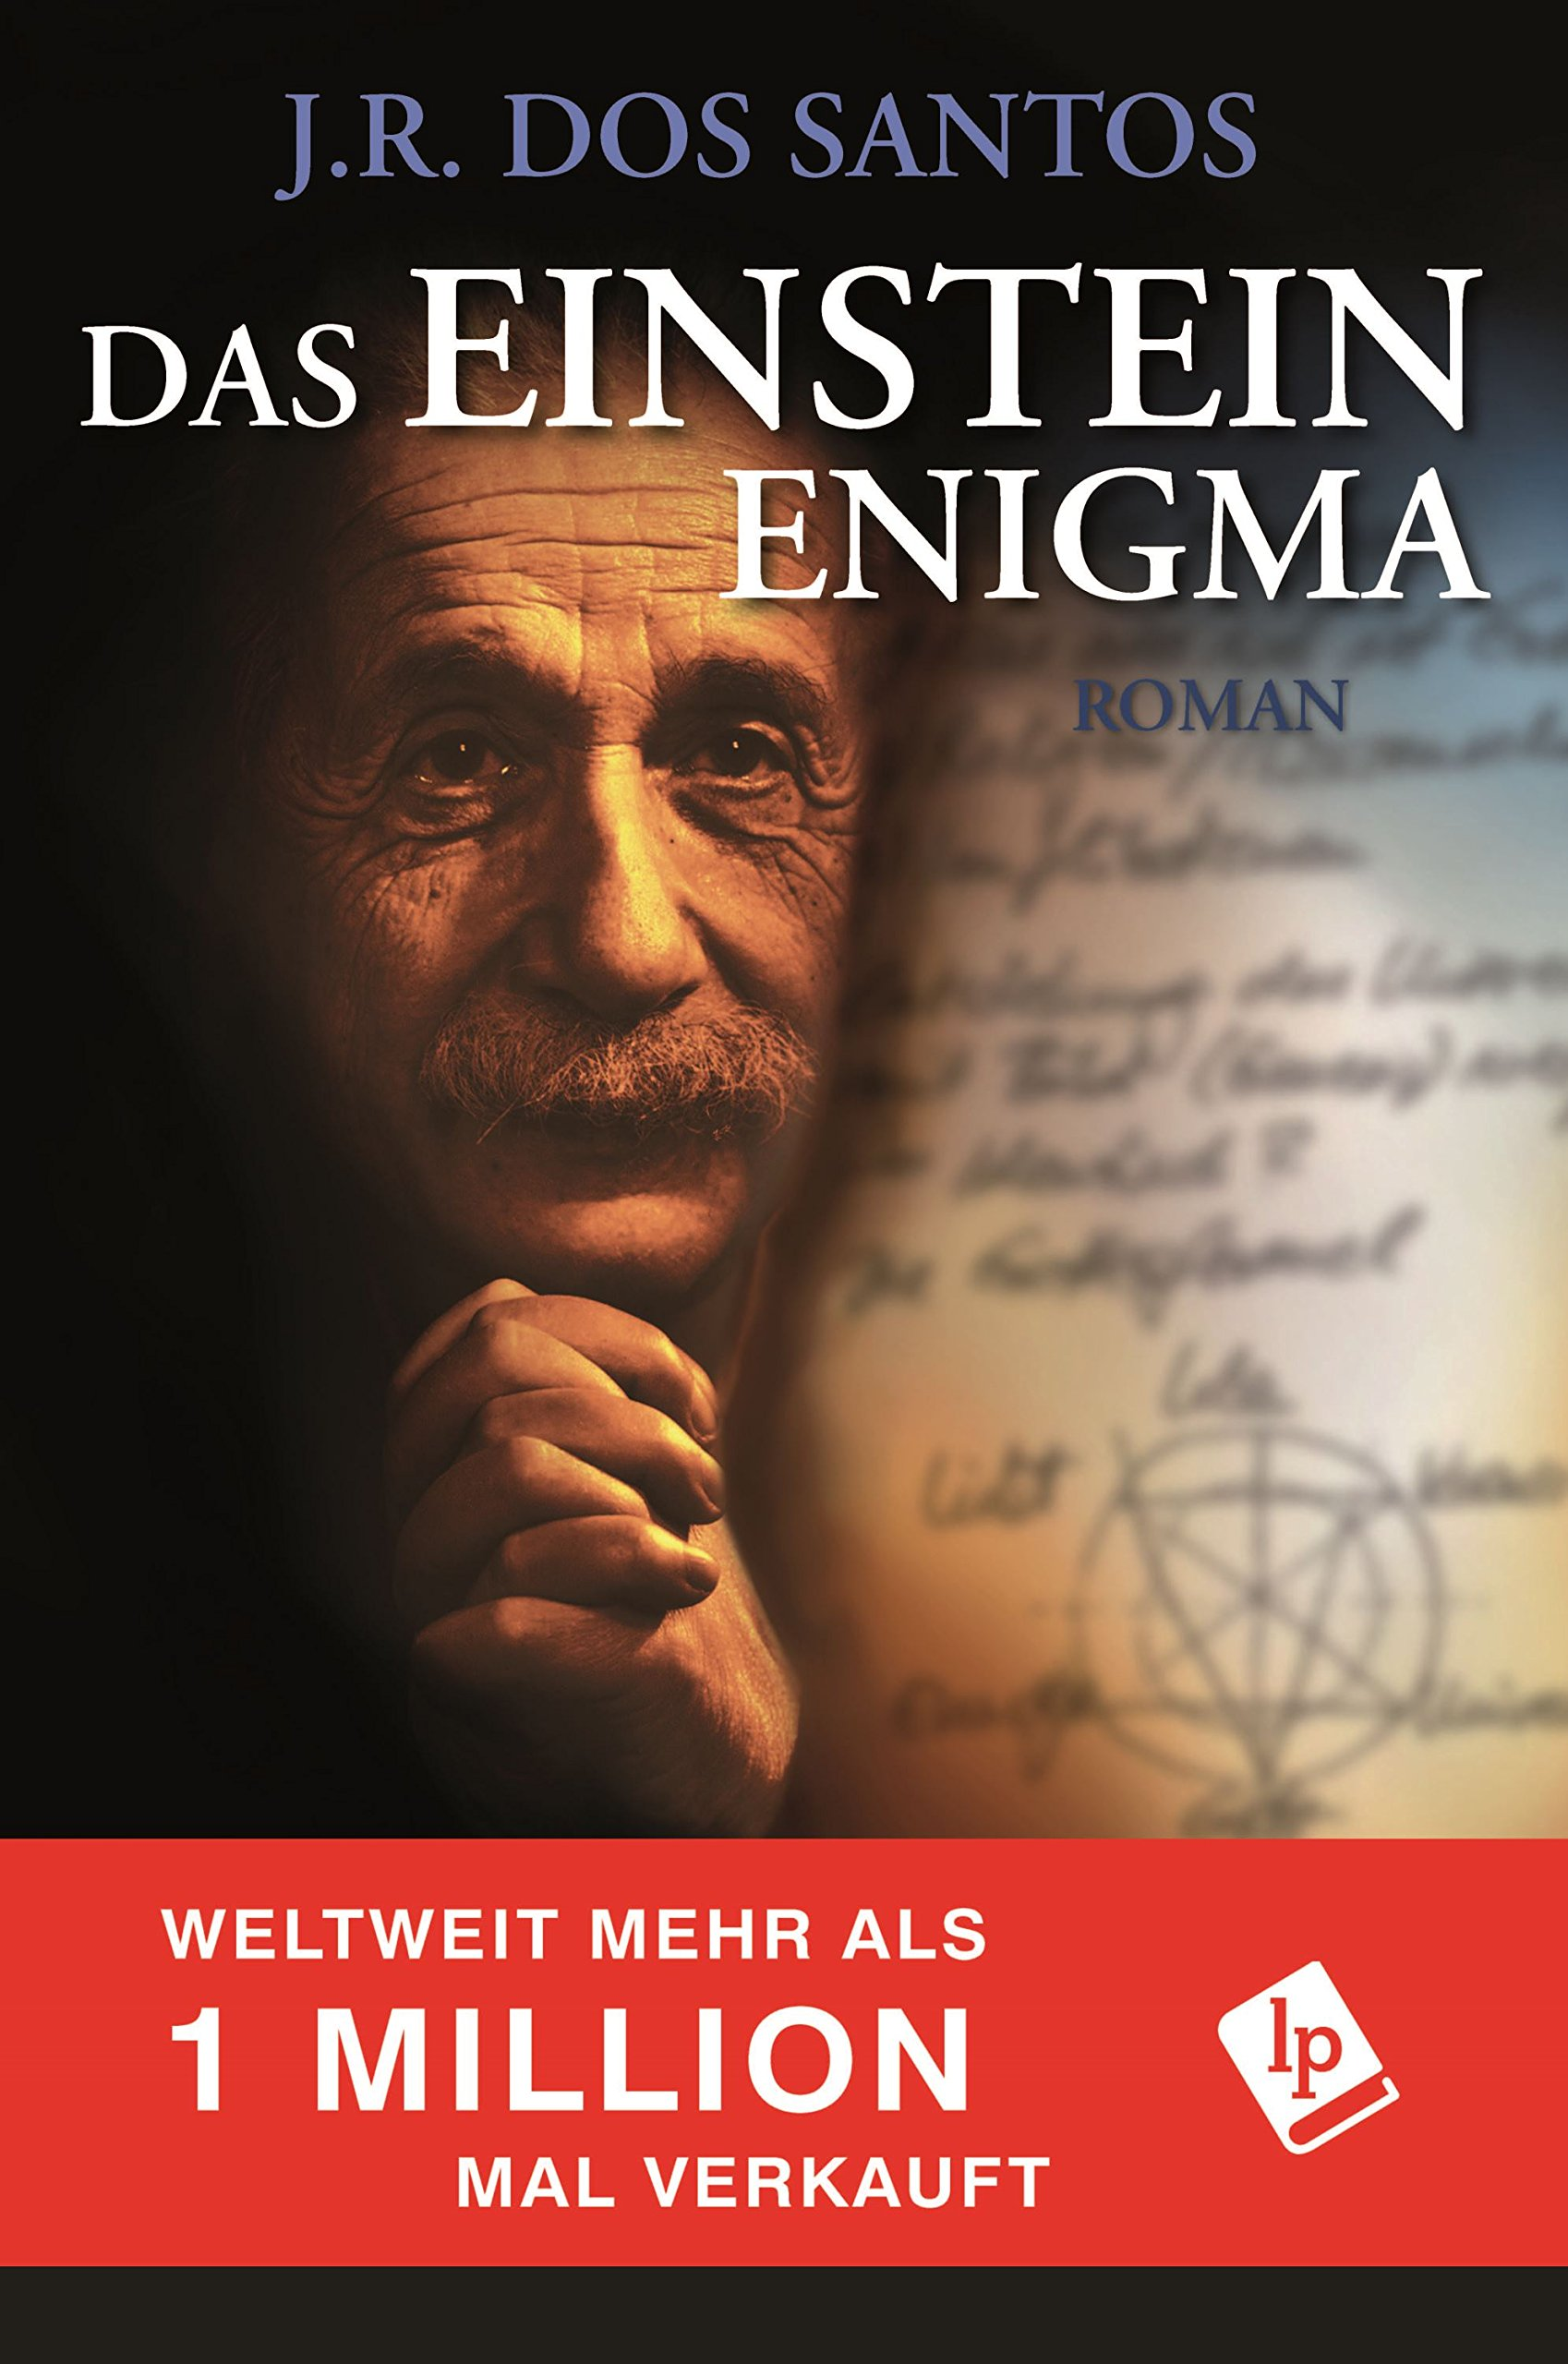 https://www.luzarpublishing.com/buchtitel/